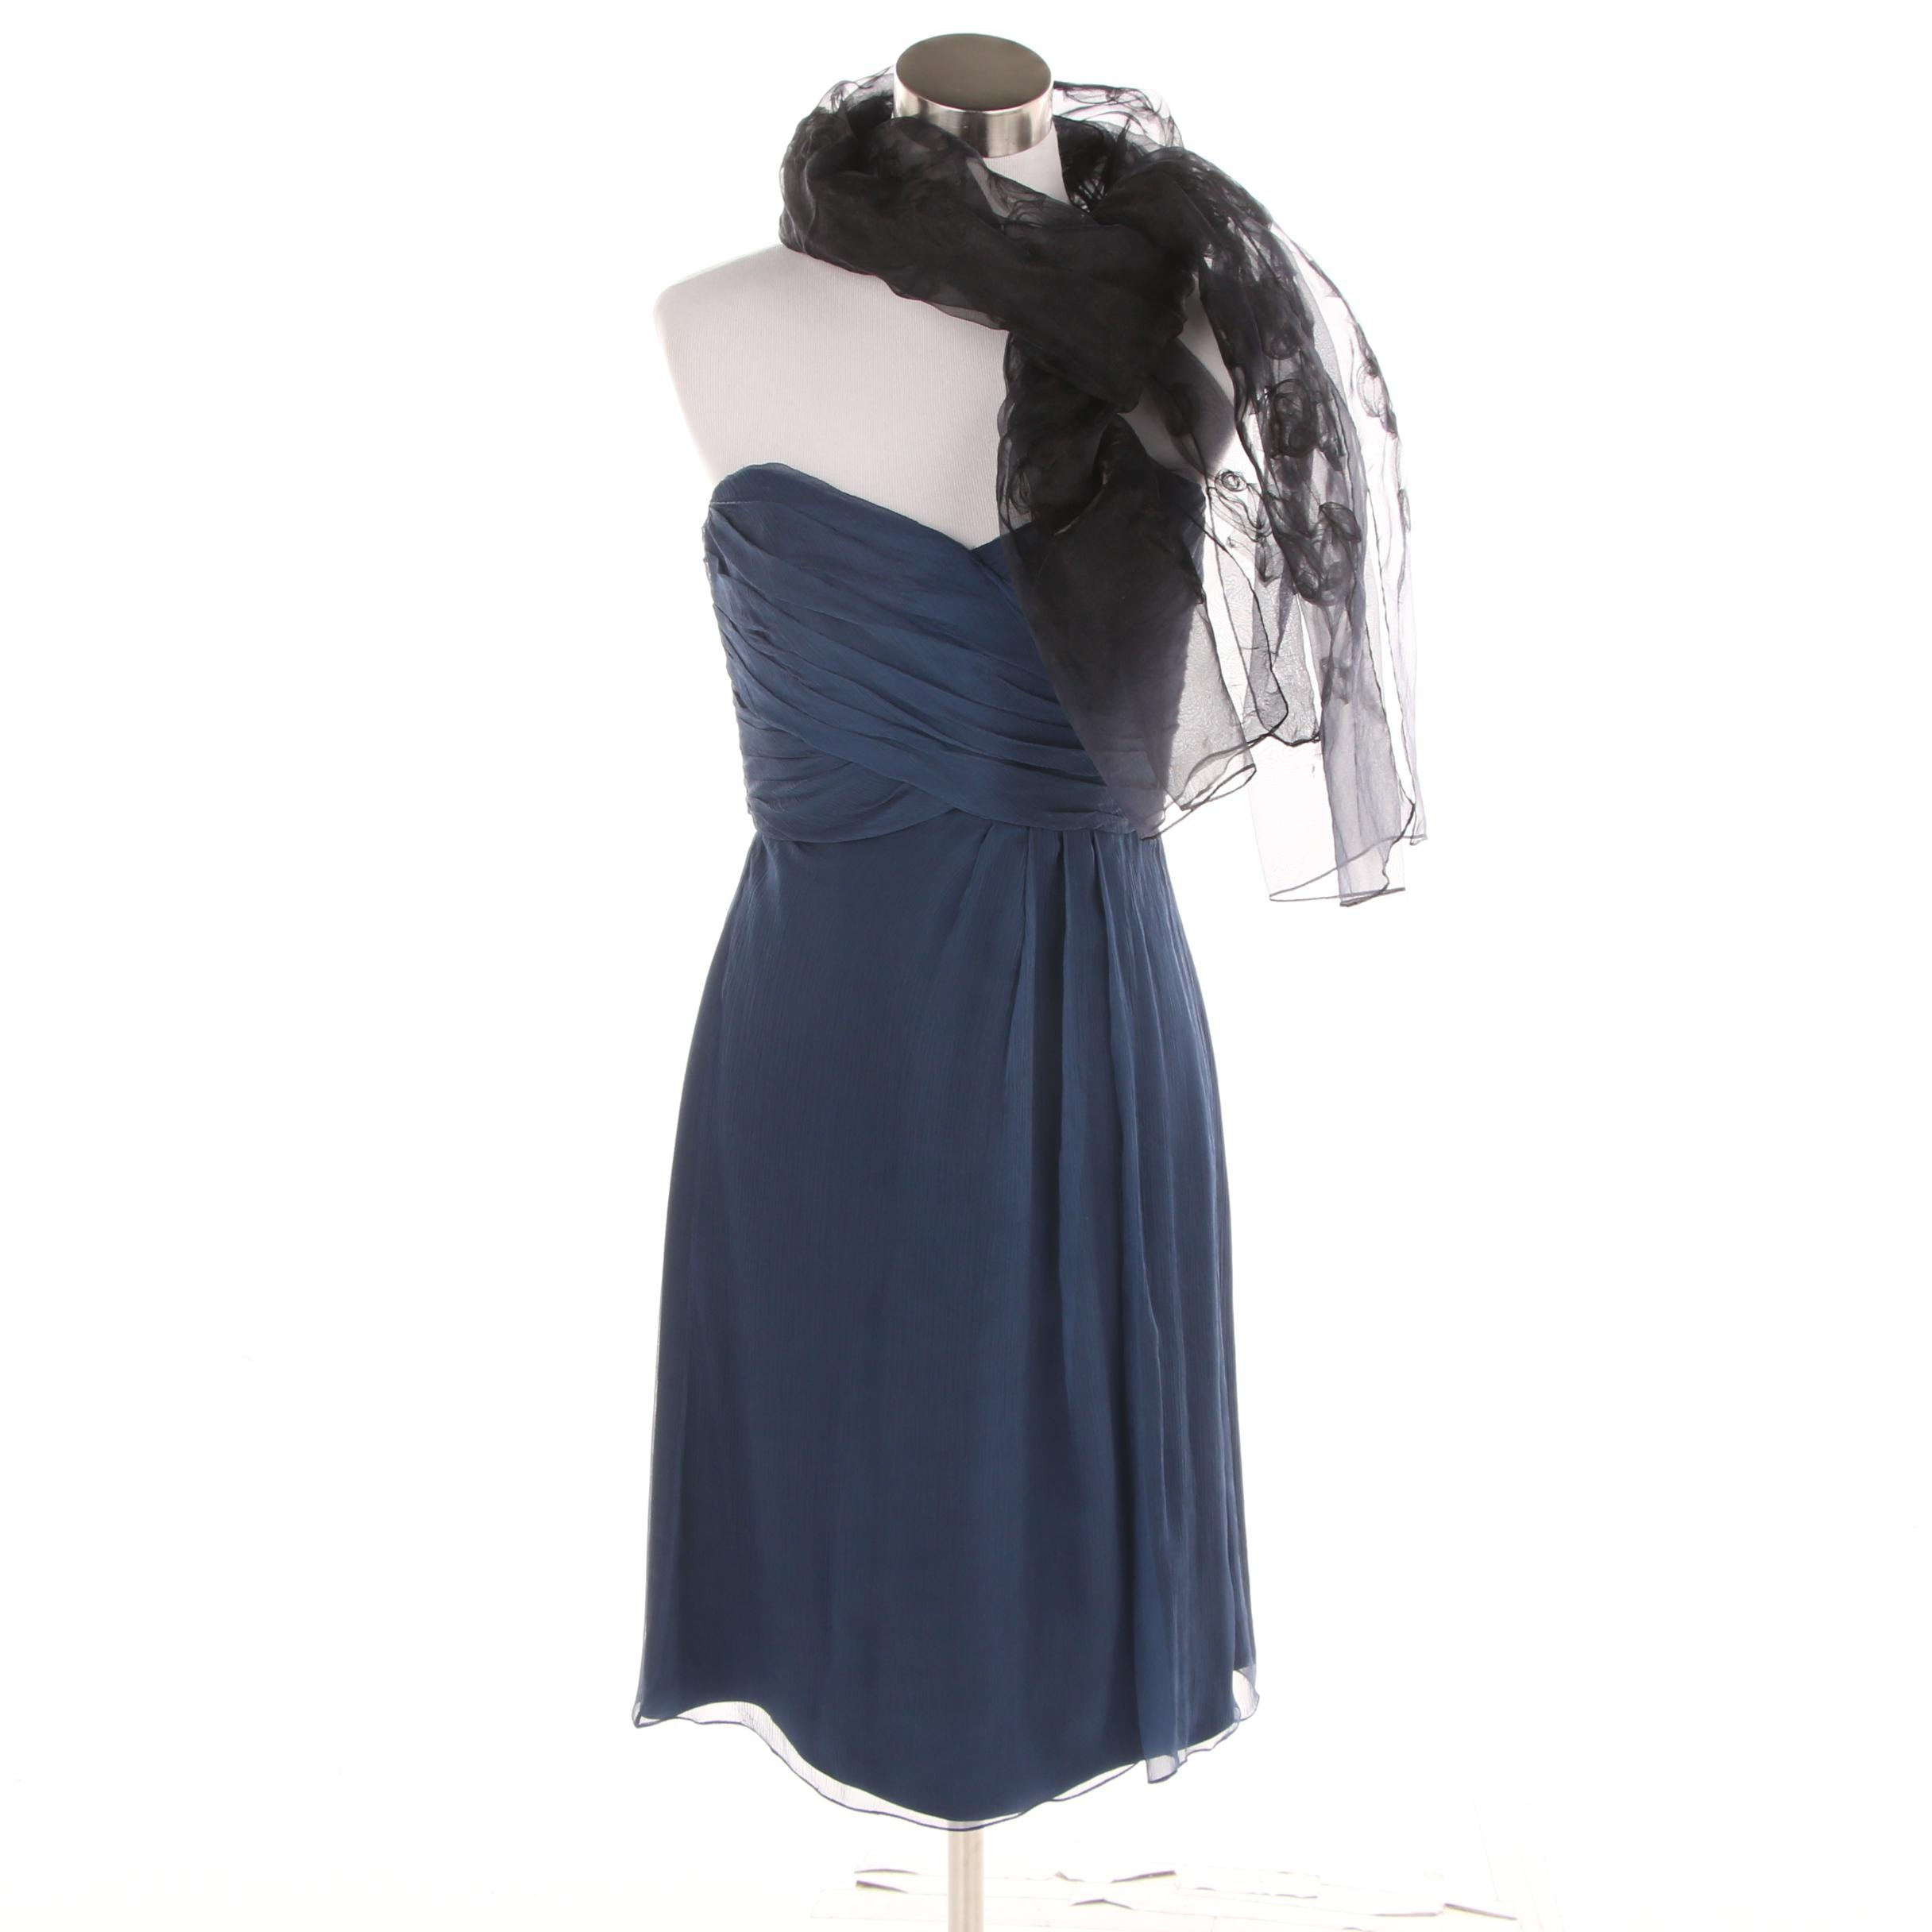 Amsale Blue Silk Strapless Cocktail Dress with a Sheer Black Scarf